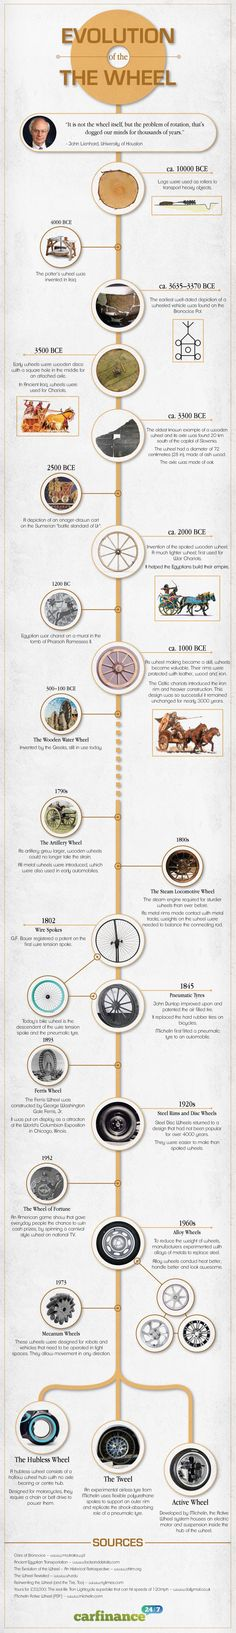 Evolution of the wheel #infographic